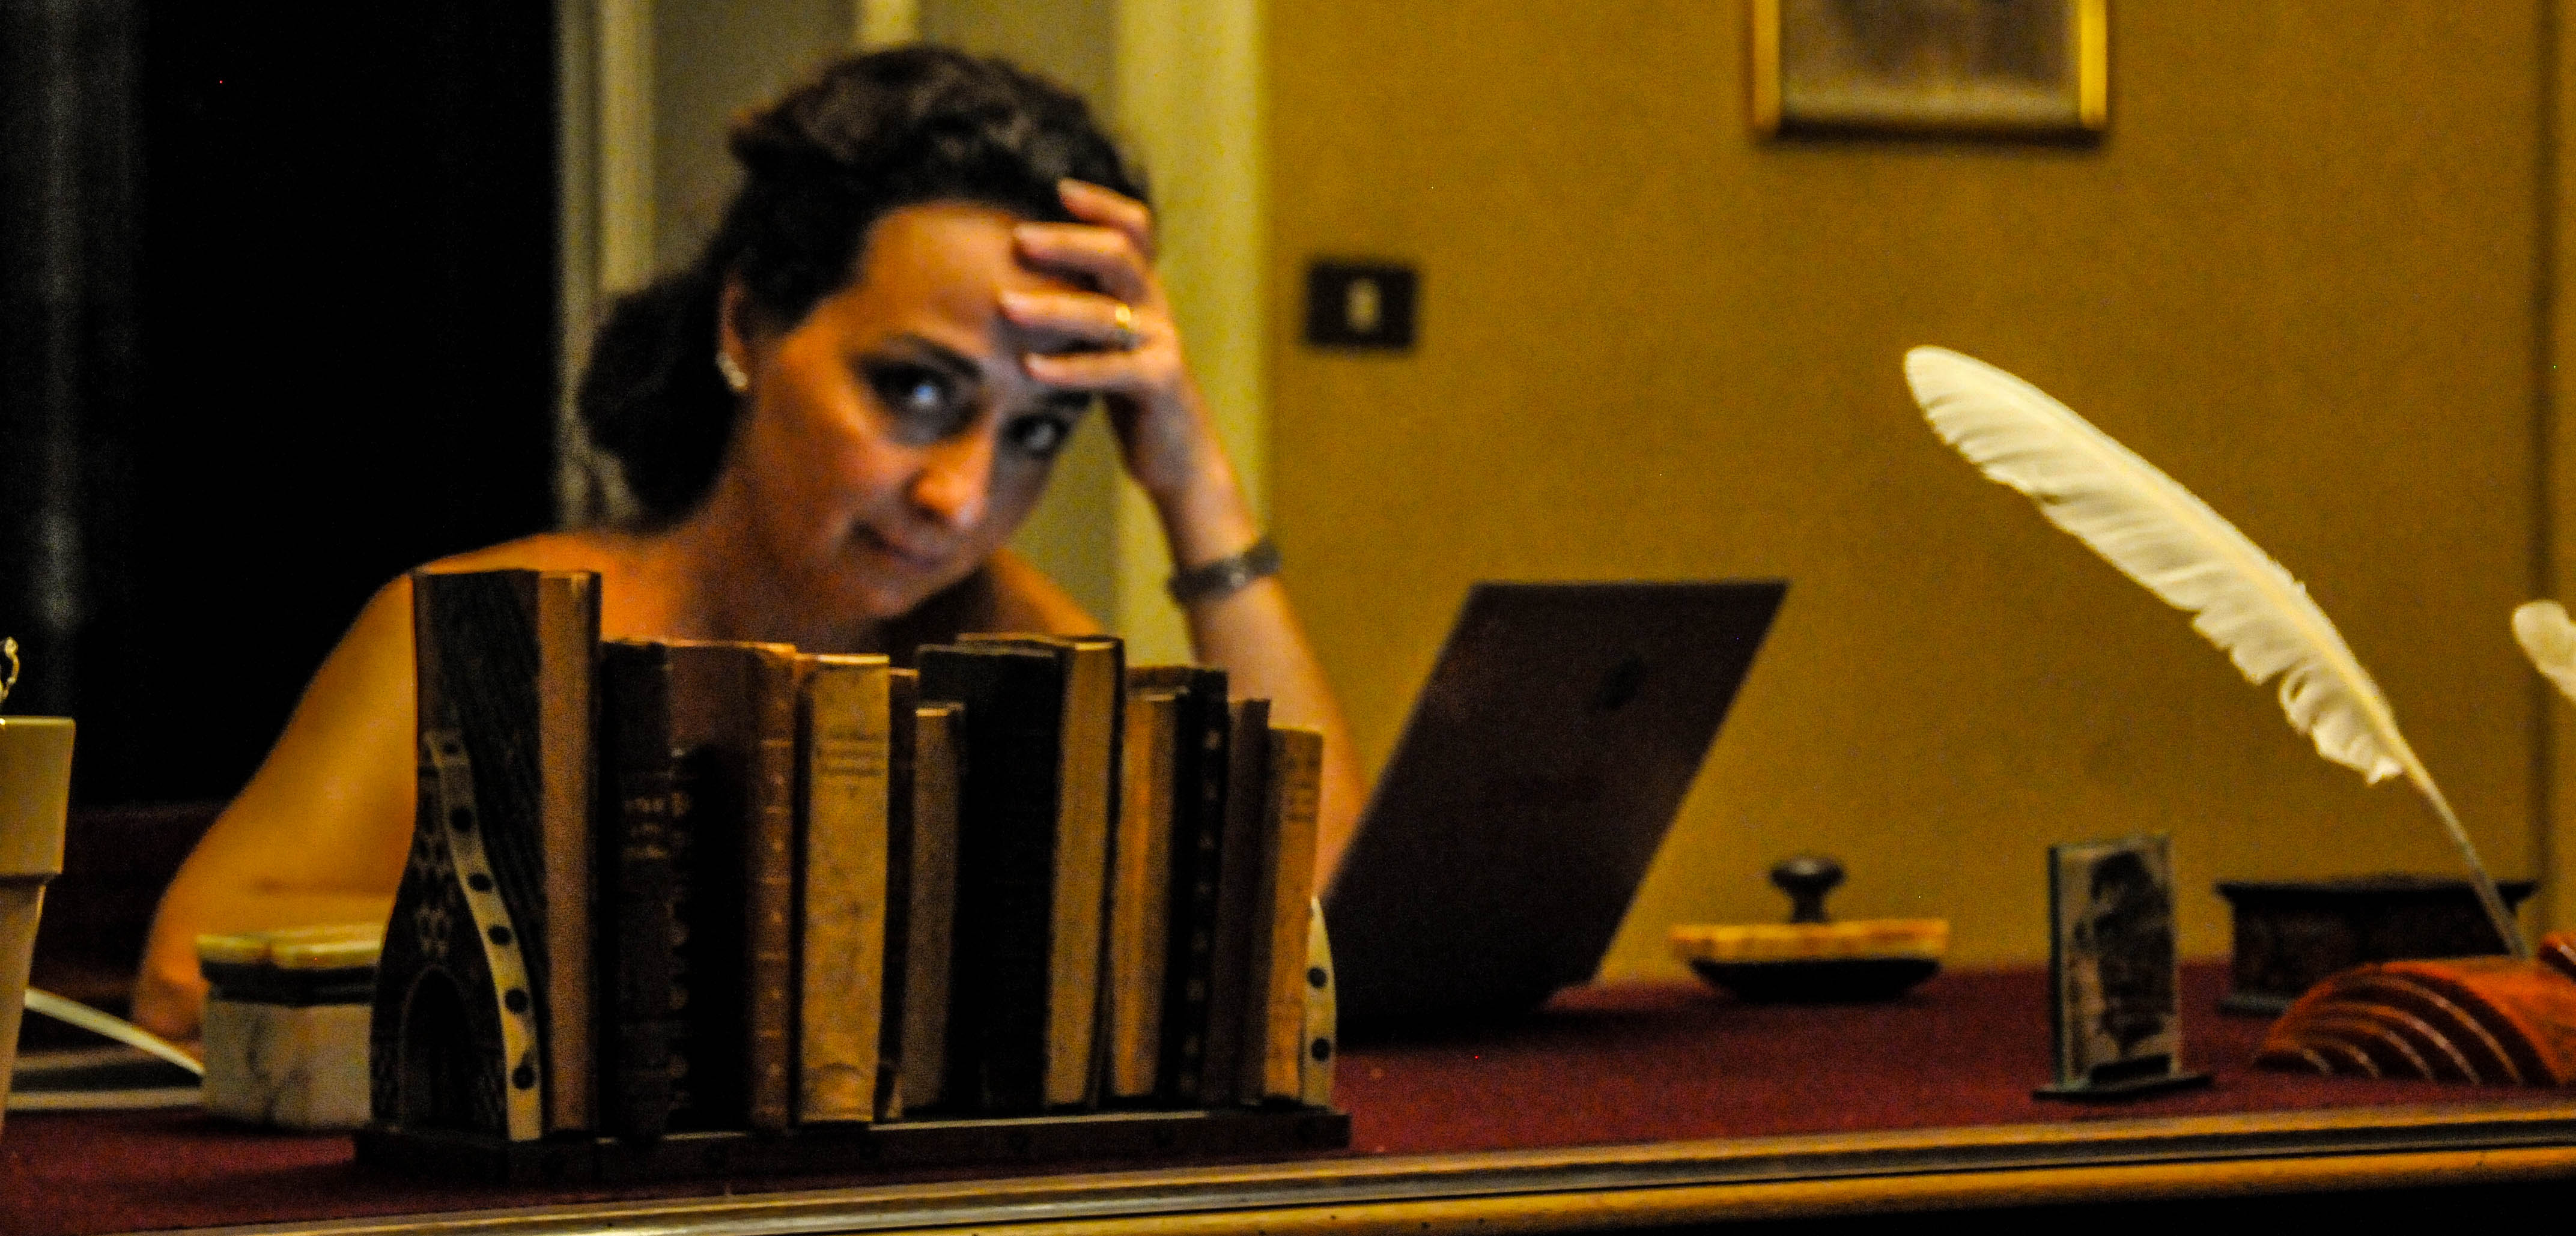 Giada Trebeschi with books and feather